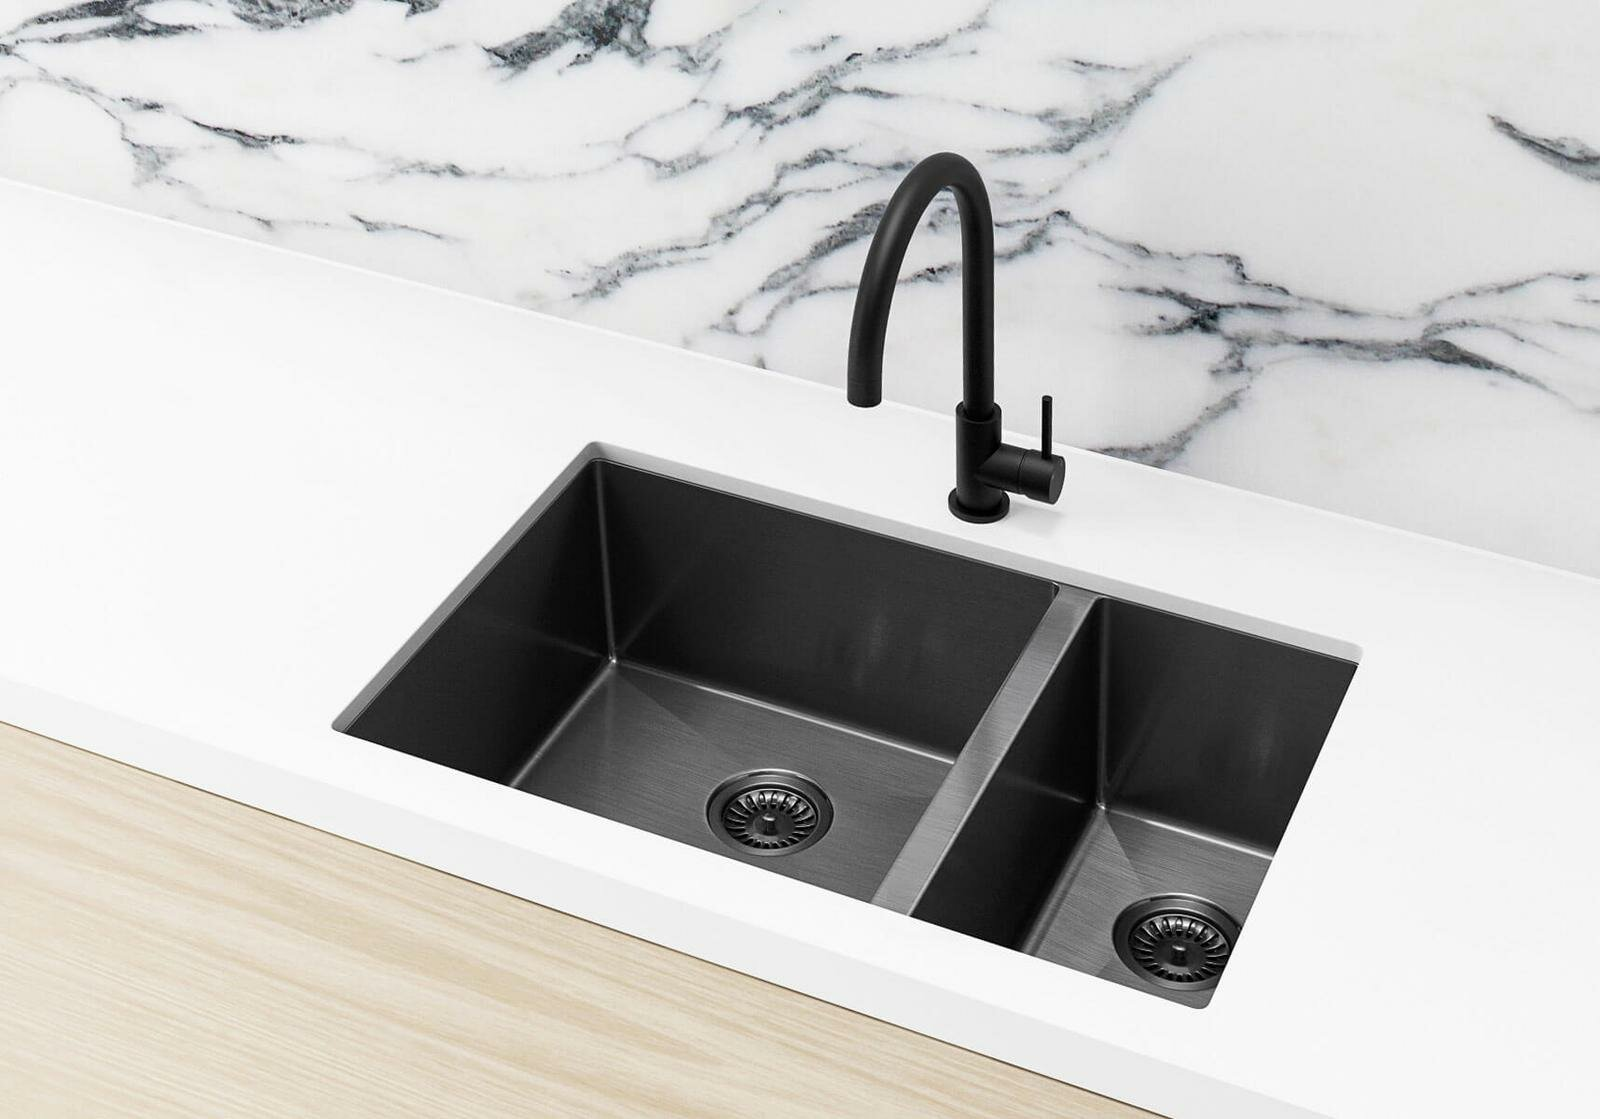 Meir black kitchen tap and sink on white marble countertop and splashback